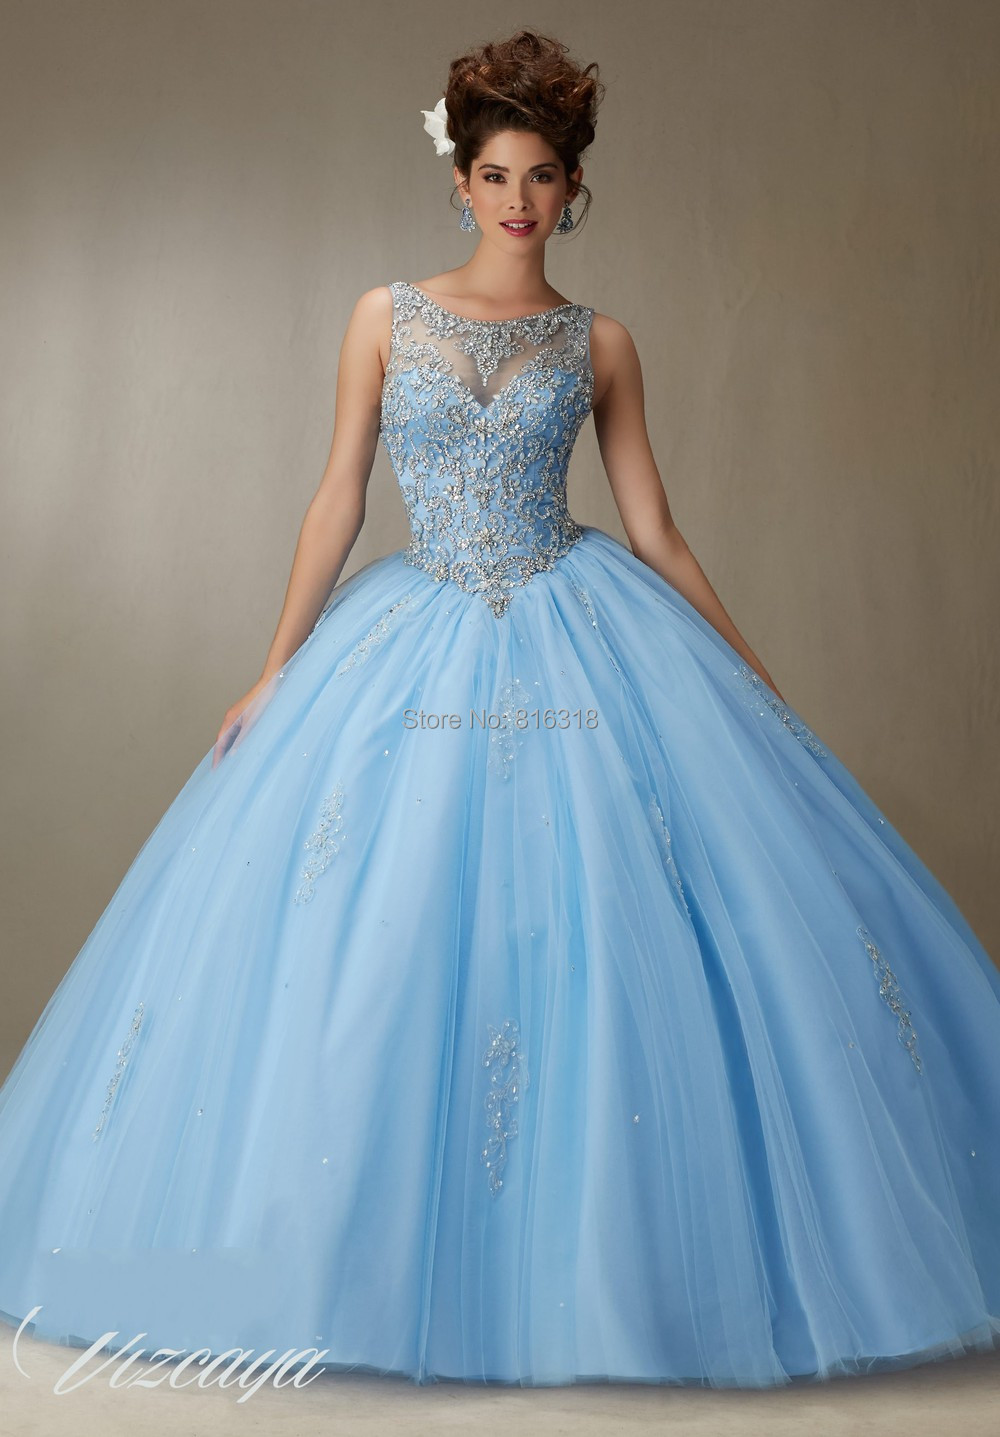 30c18e5b679 AliExpress 2016 Cheap Quinceanera Gowns Debutante Sweet 16 Princess Dresses  Blue Red Coral Pink White Online Ball